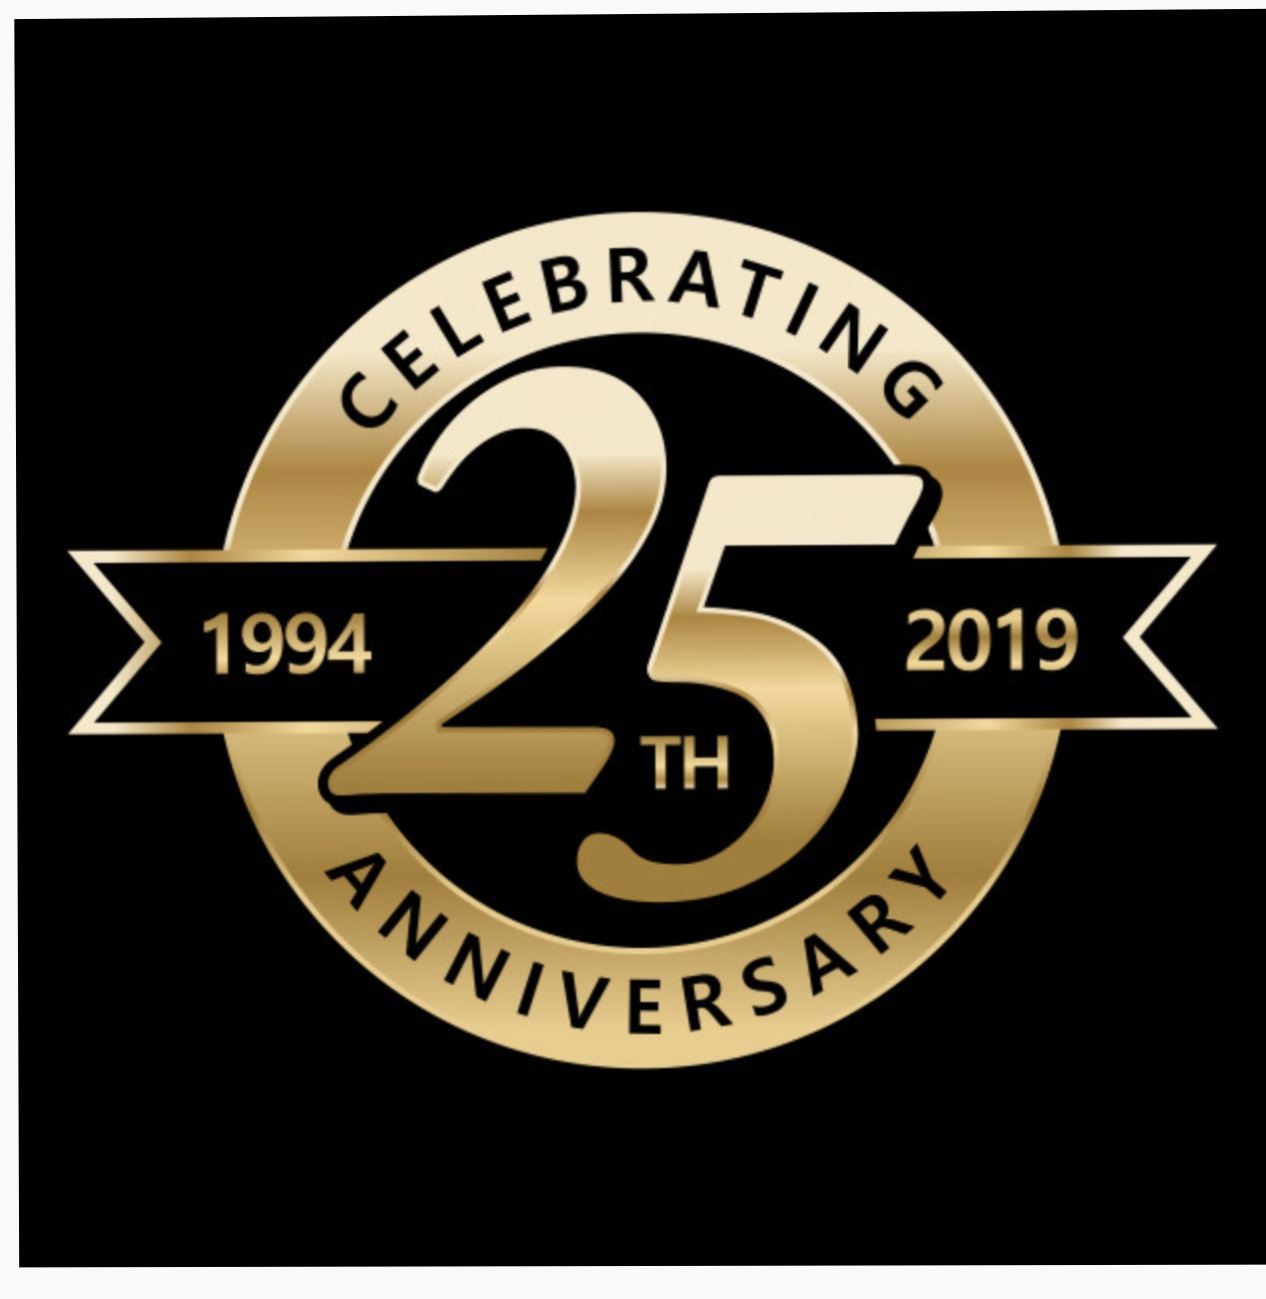 Celebrating our 25th Anniversary